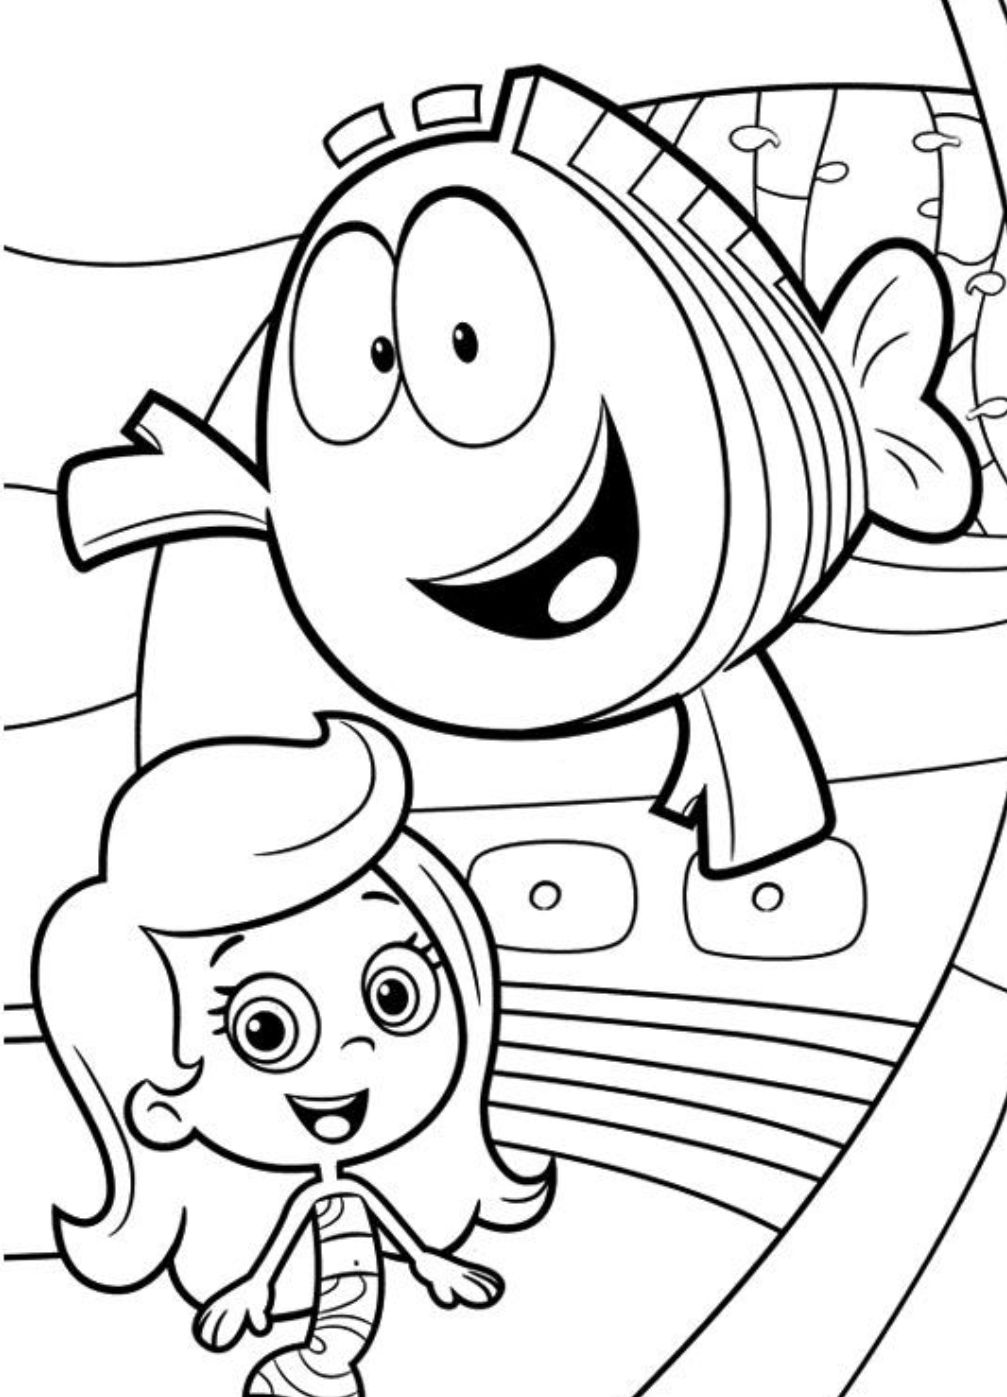 Molly Bubble Guppies Coloring Pages Download And Print For